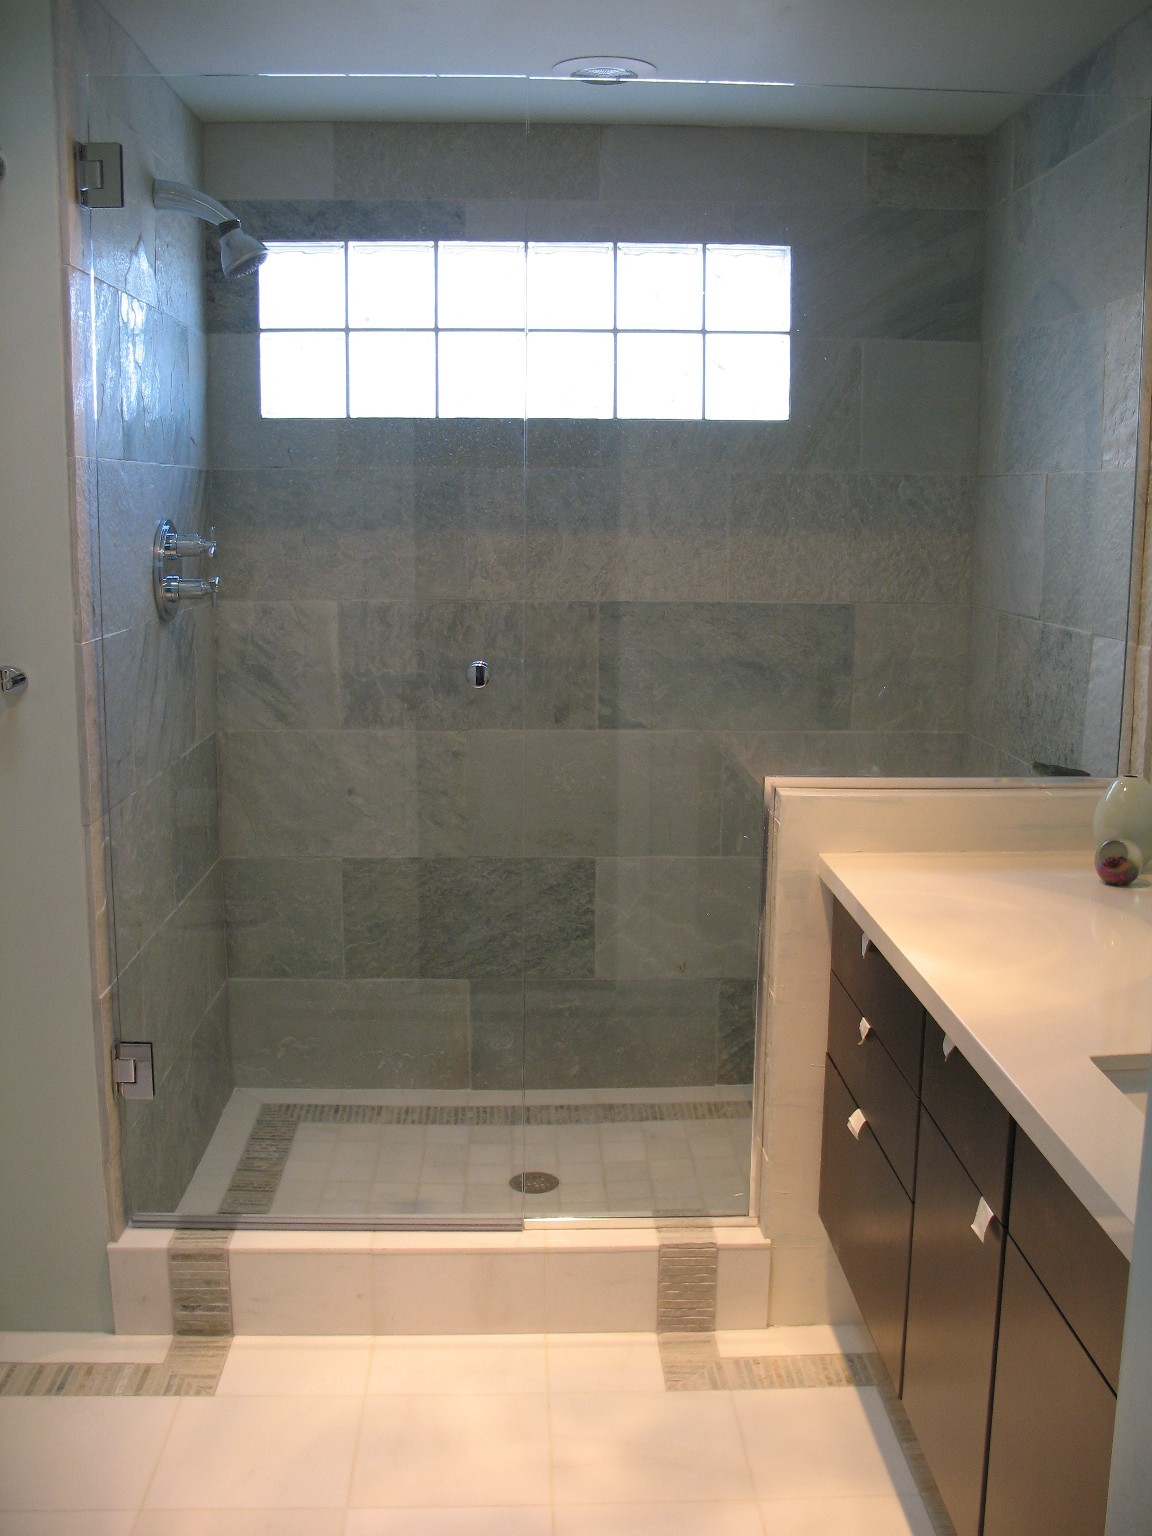 Bathroom shower ideas on a budget -  Bathroom Shower Tile Design Ideas 16 Tile Shower